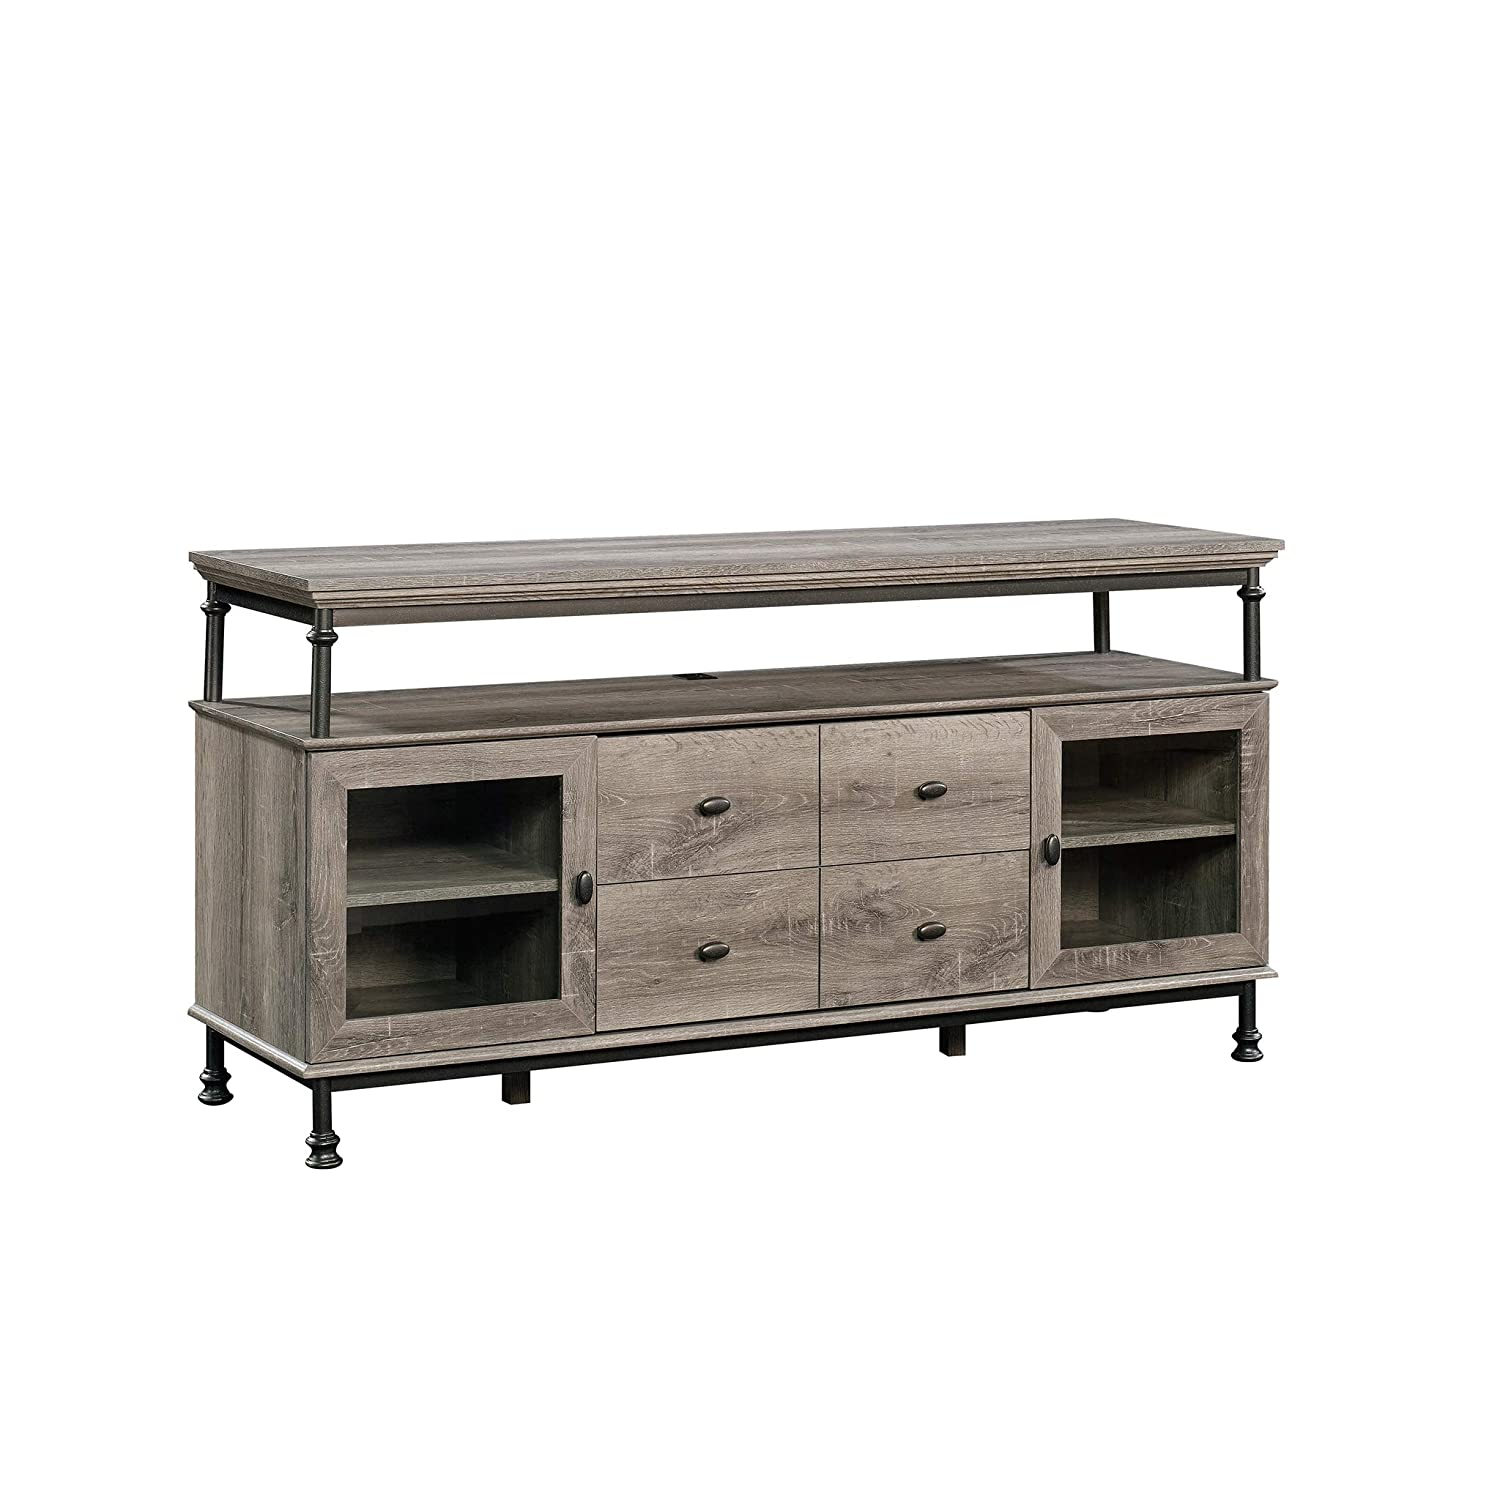 Sauder 420494 Canal Street Entertainment Credenza, L: 60.00